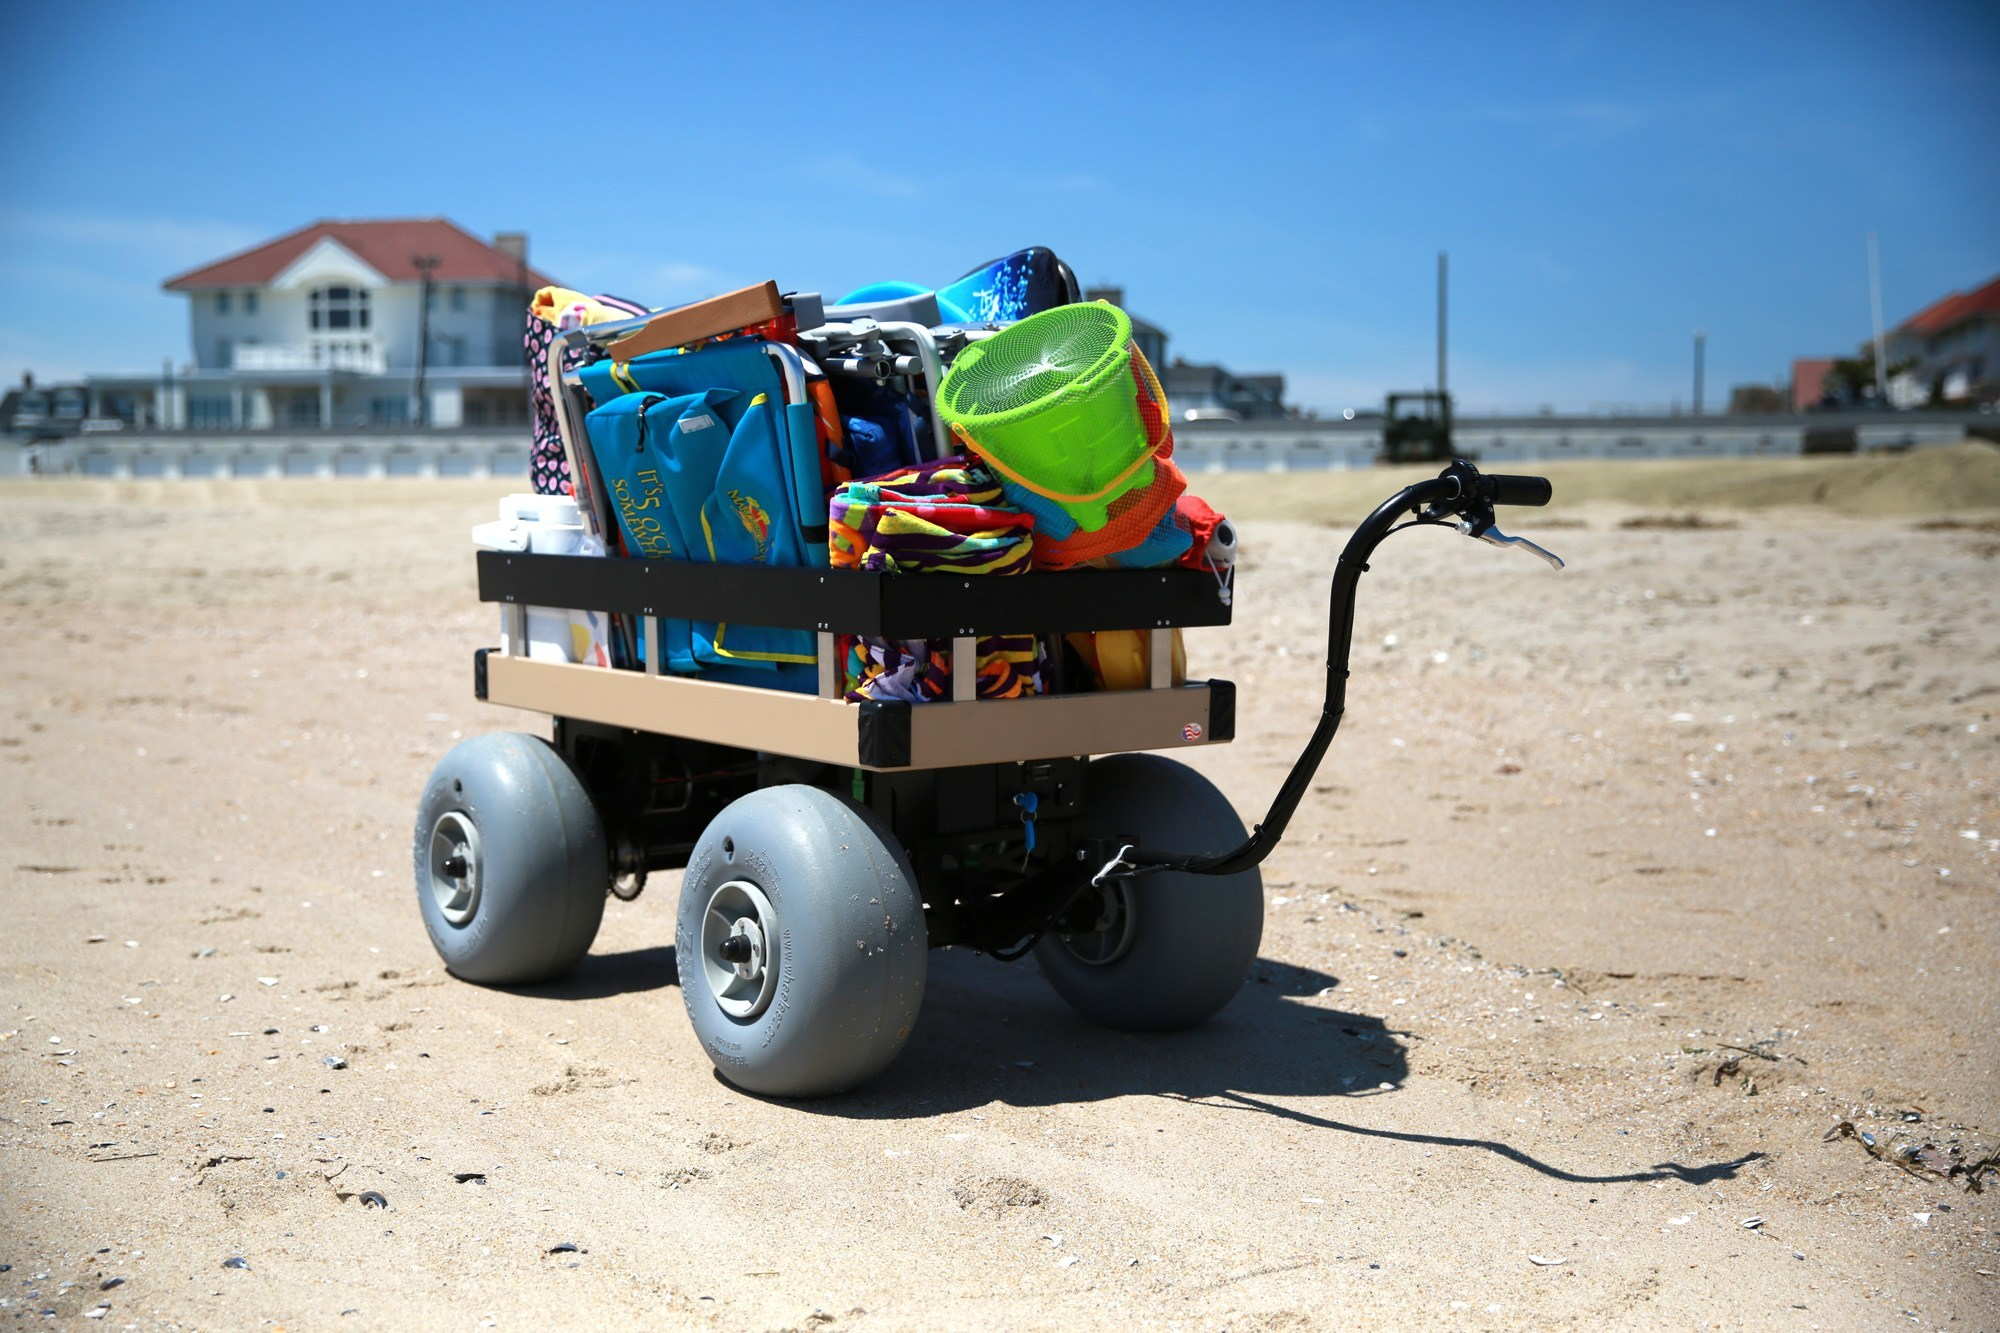 Electric Beach Cart on the Beach - Electric Beach Cart